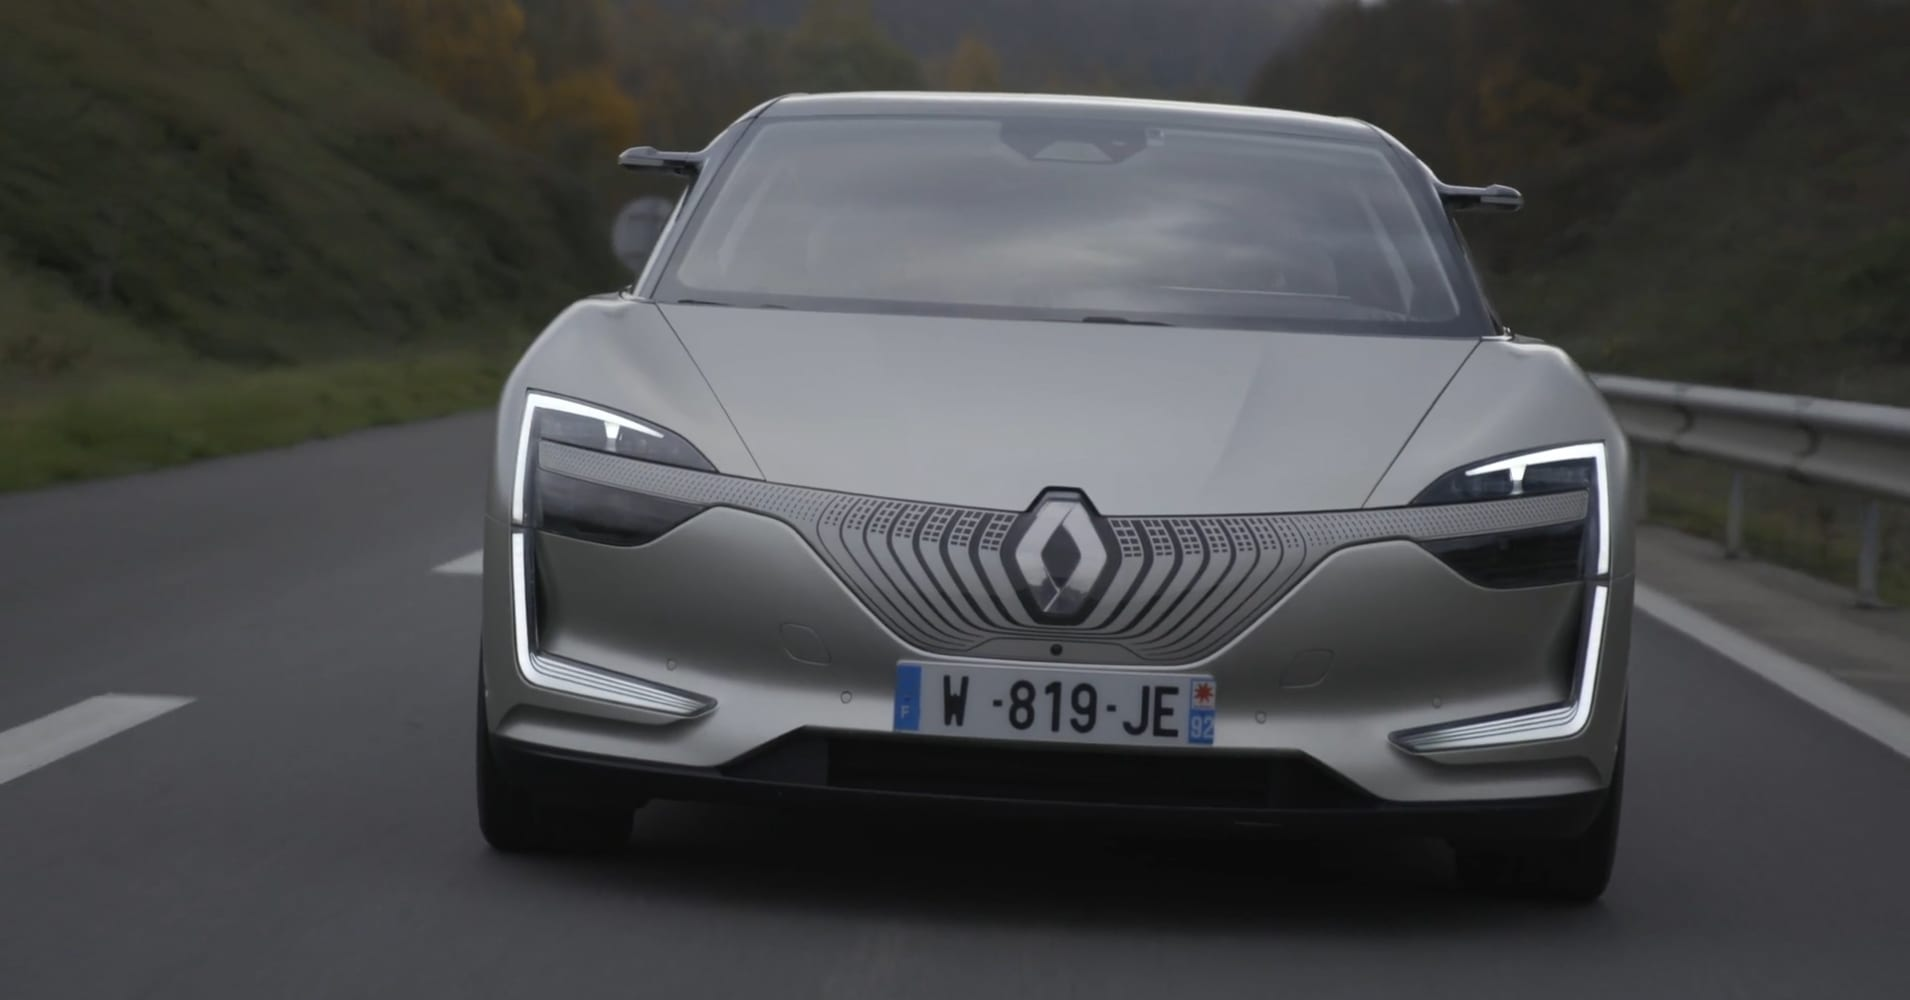 Renault just showed a demo car that has headlights change color when it's self-driving